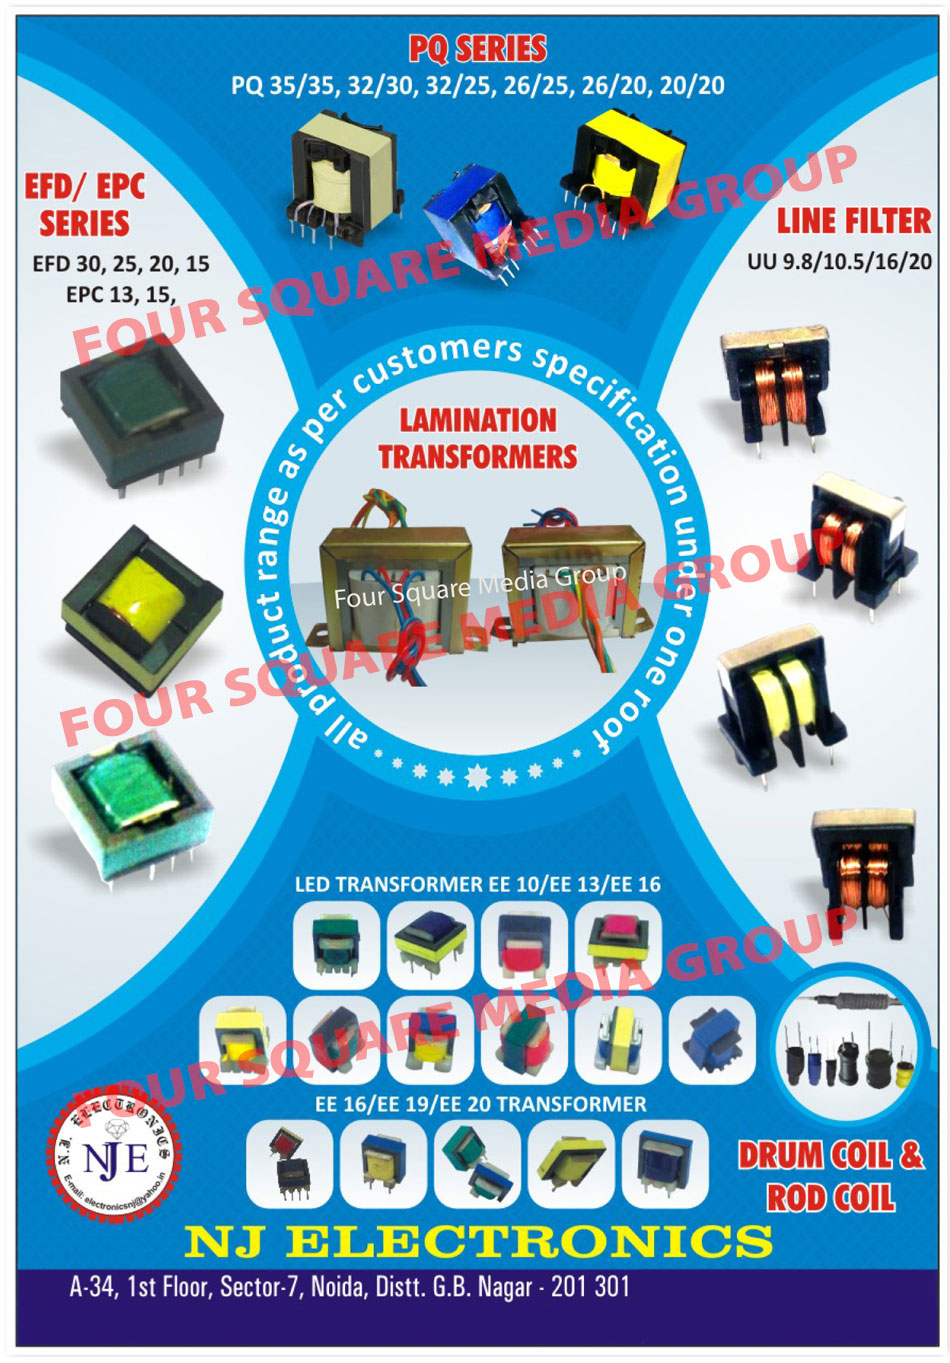 LED Drivers, SMPS Transformers, Choke Coils, CFL Choke Coils, CFL Toroidal, Toroidal Coils, Drum Coil Inductor, Power Choke, Line Filters, Customized Products, LED Transformers, LED Drivers, SMPS Transformers, Choke Coils, CFL Choke Coils, CFL Toroidal, Toroidal Coils, Drum Coil Inductor, Power Choke, Coils, Led Bulbs, Drum Coil, Rod Coil, EFD Series Transformer, EPC Series Transformers, EE Transformers, Lamination Transformers